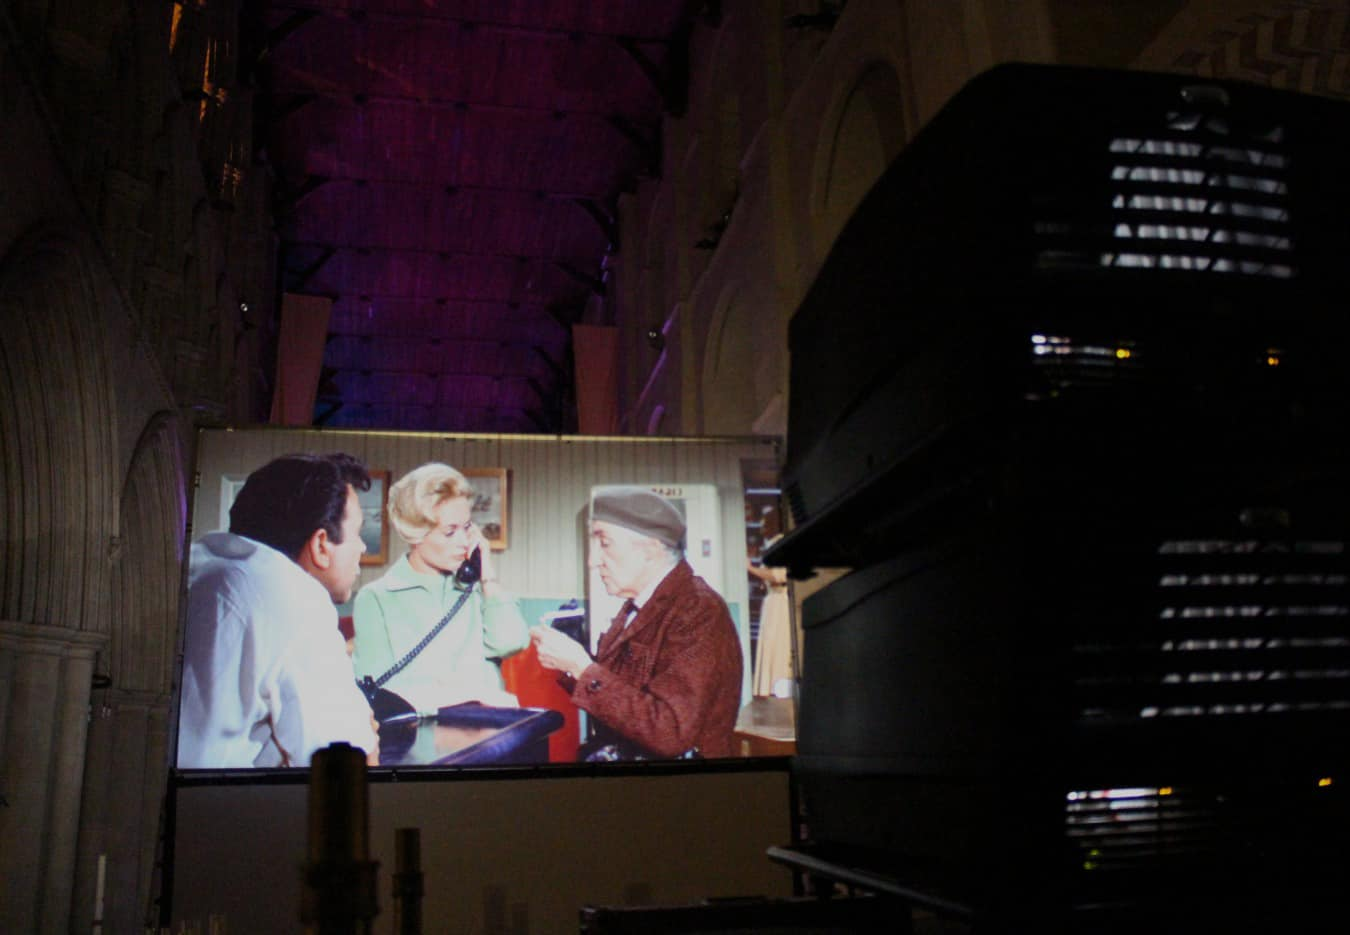 Projector Hire Projection Screen Barco Film Festival St Albans Cathedral Vortex Events